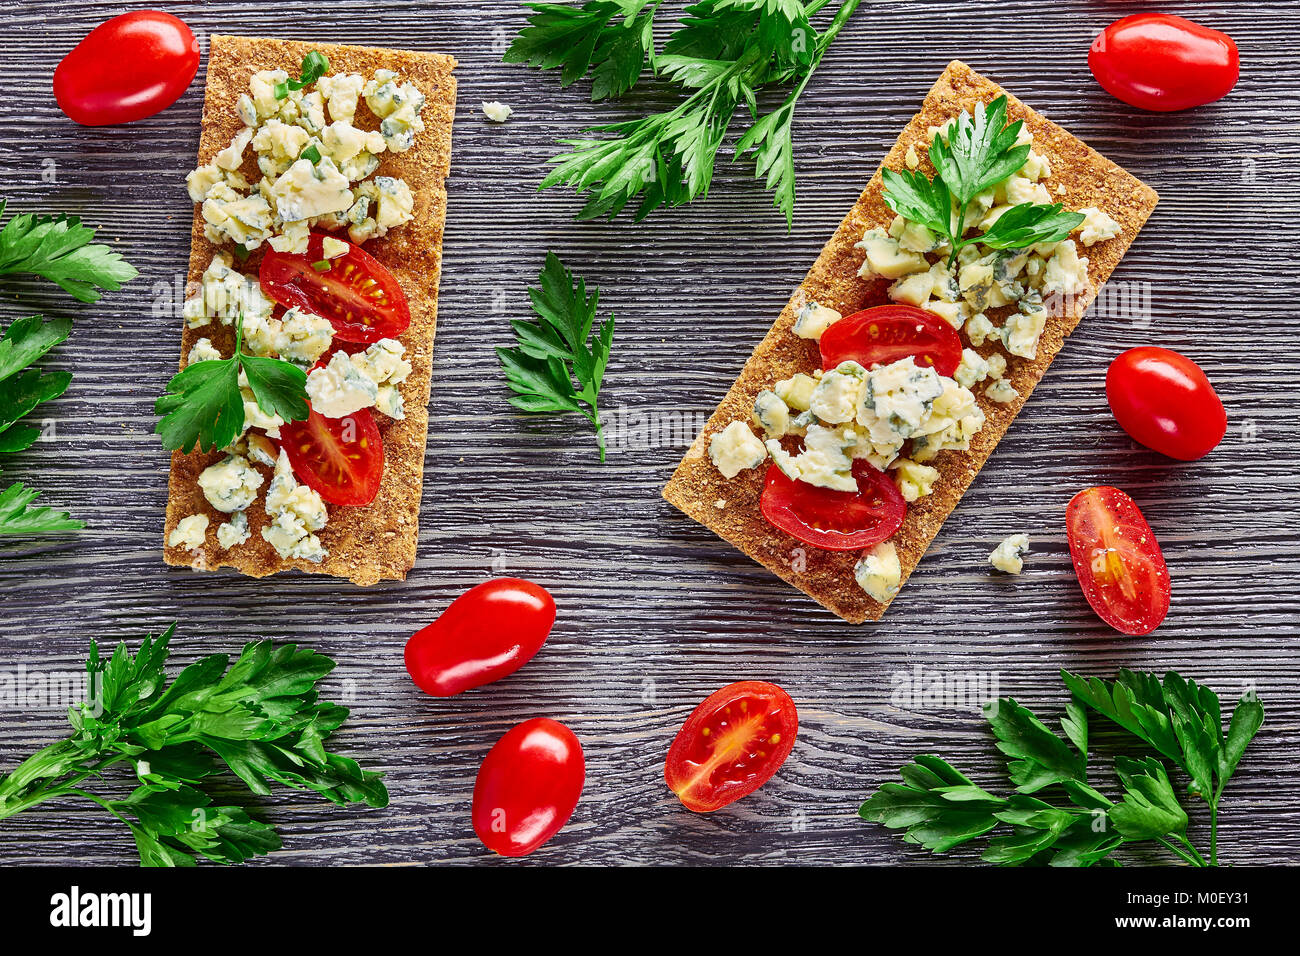 Crispbread with blue cheese and tomatoes - Stock Image